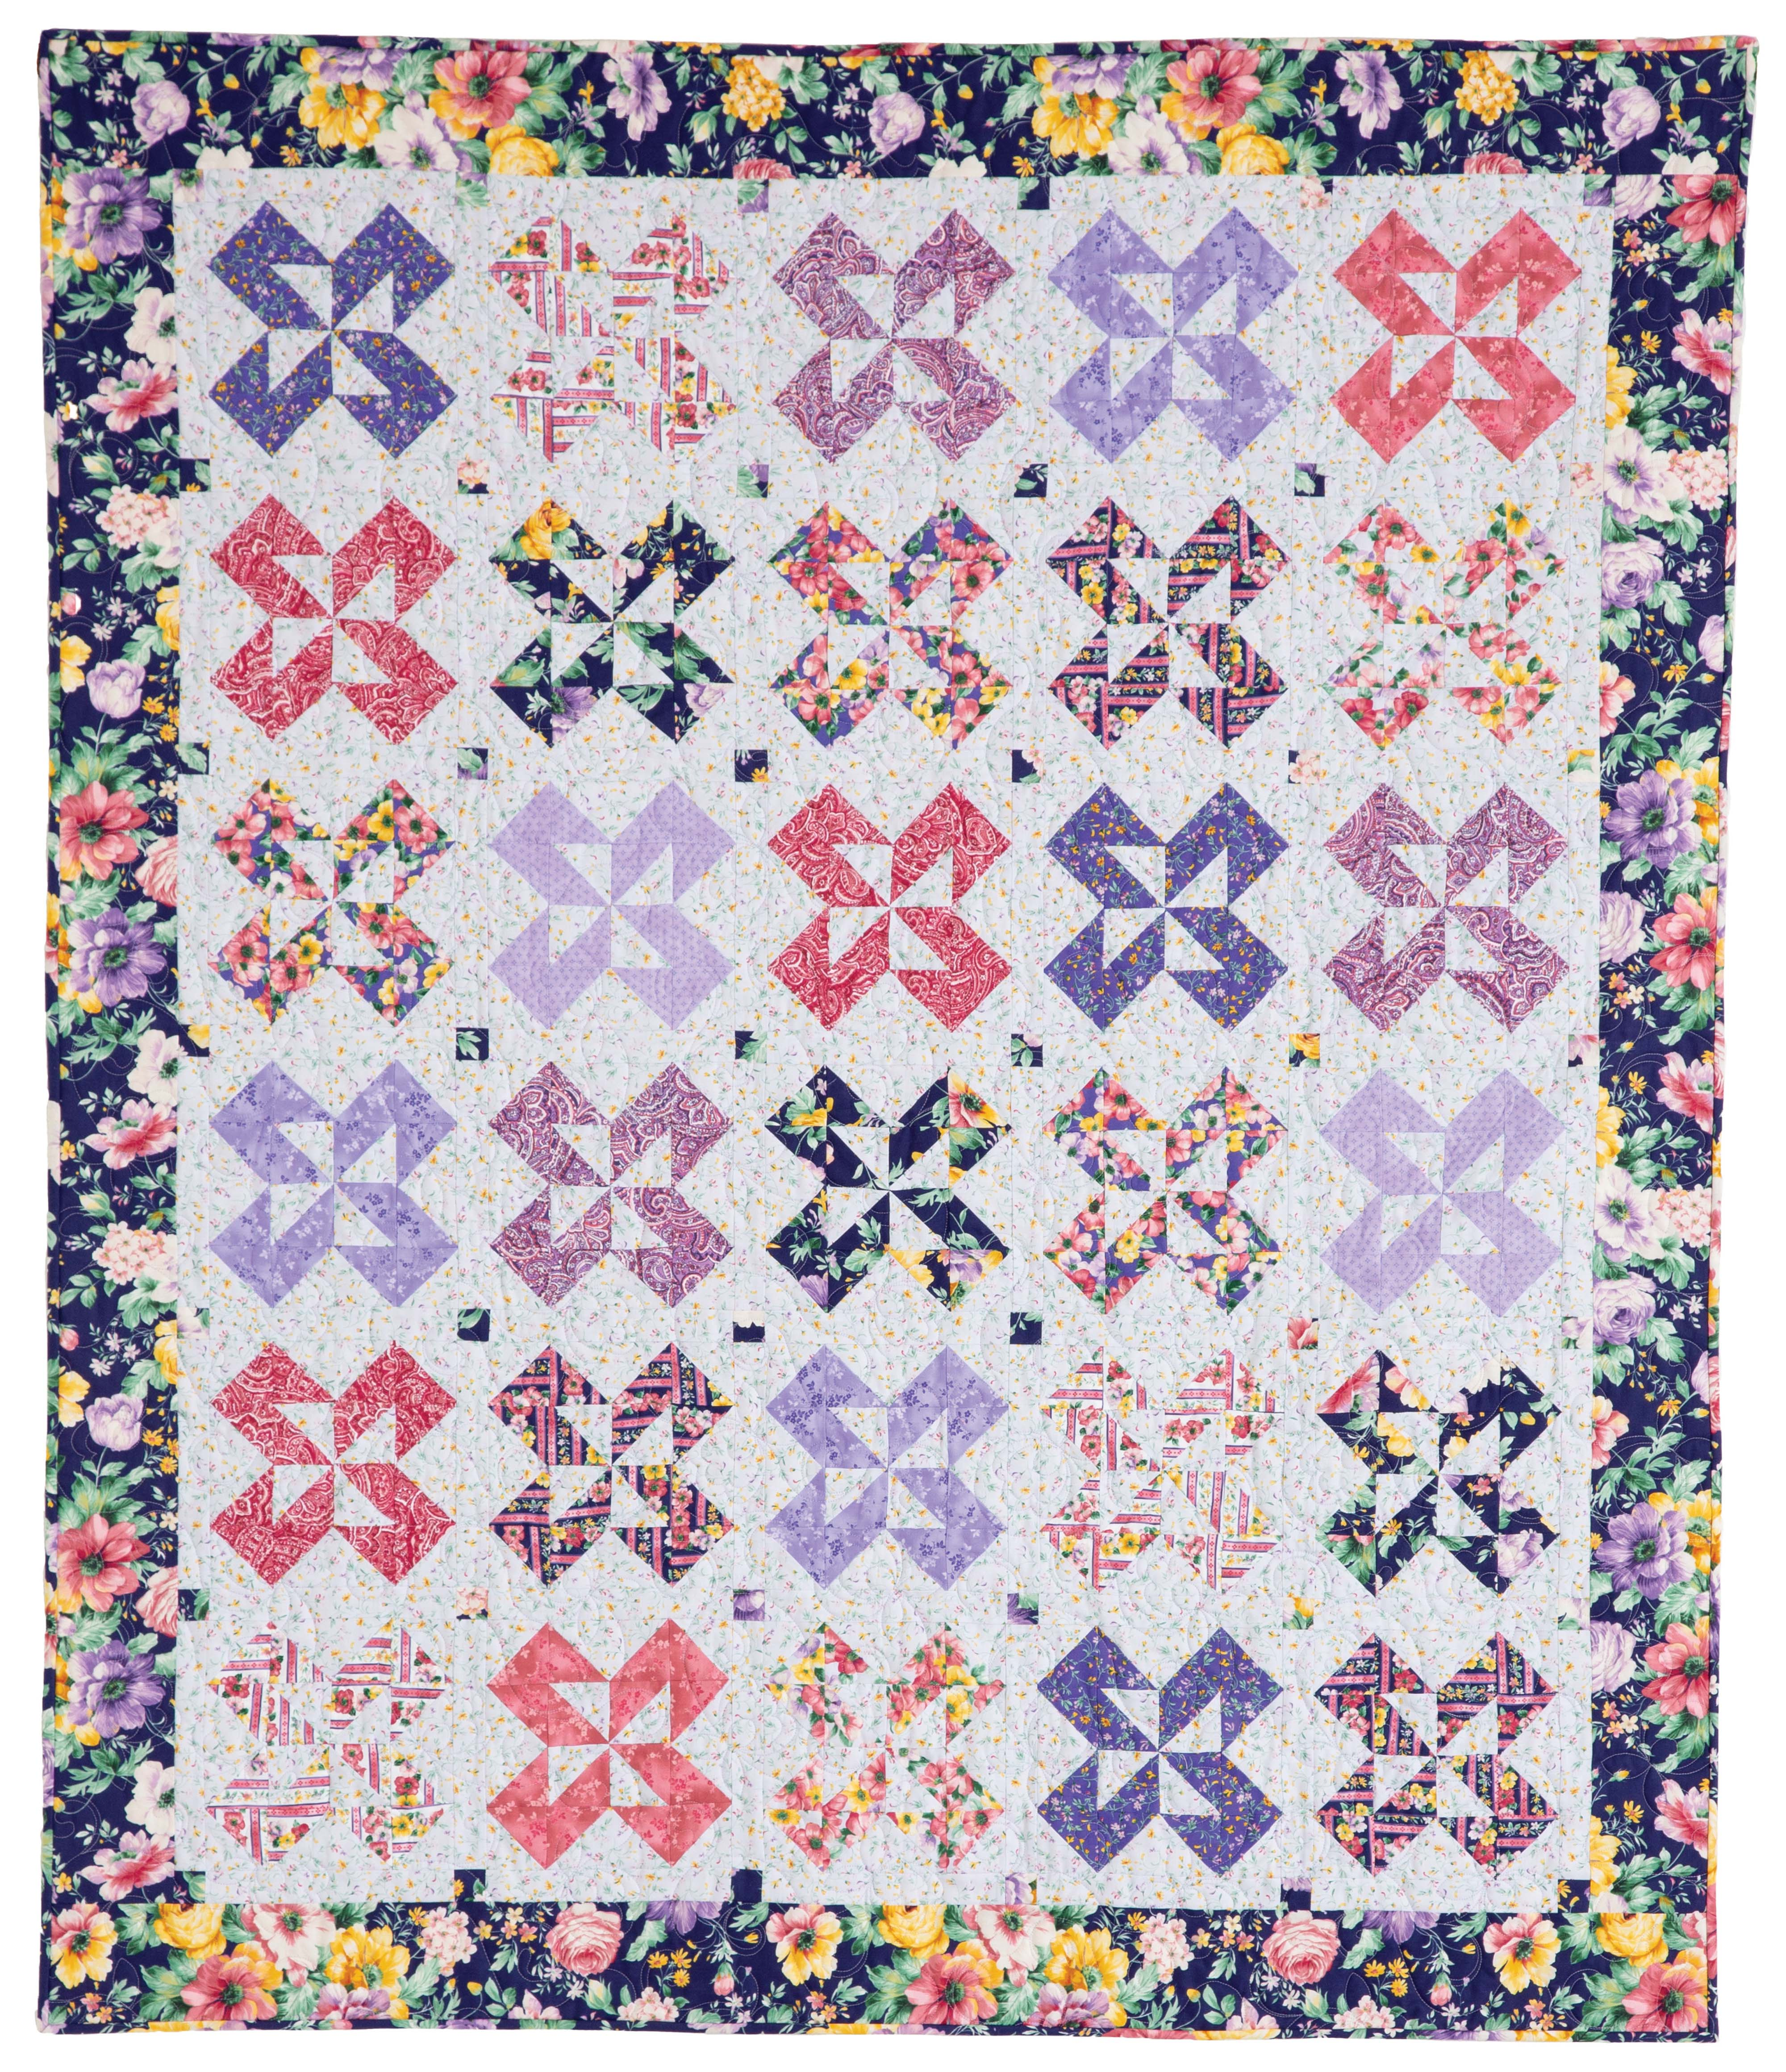 quilt-belated-blooms-flat